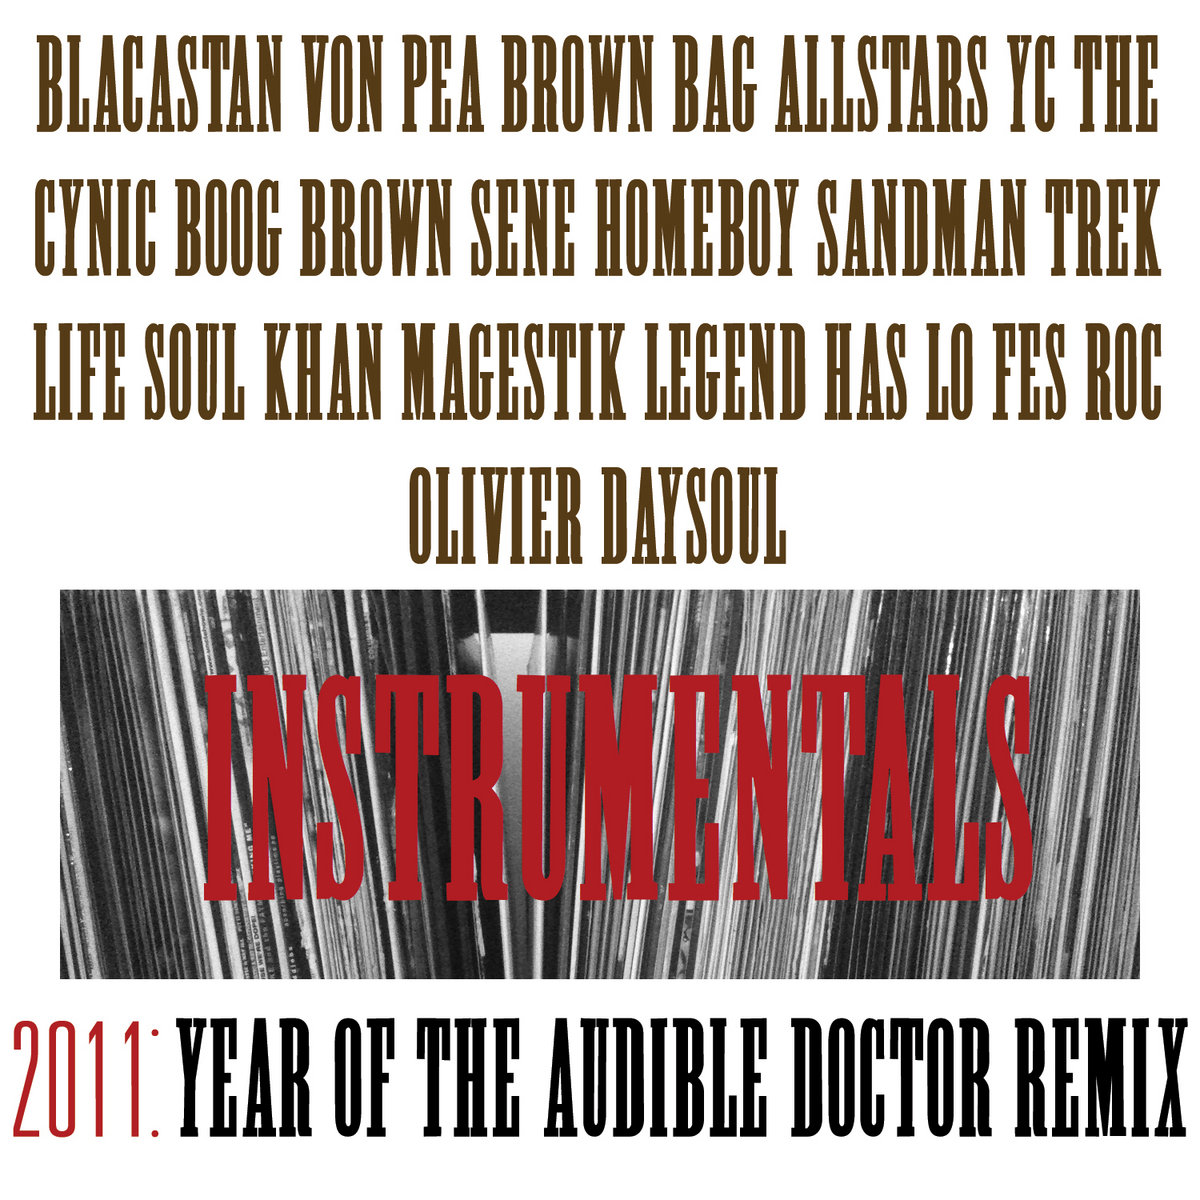 http://store.audibledoctor.com/album/2011-year-of-the-audible-doctor-remix-instrumentals